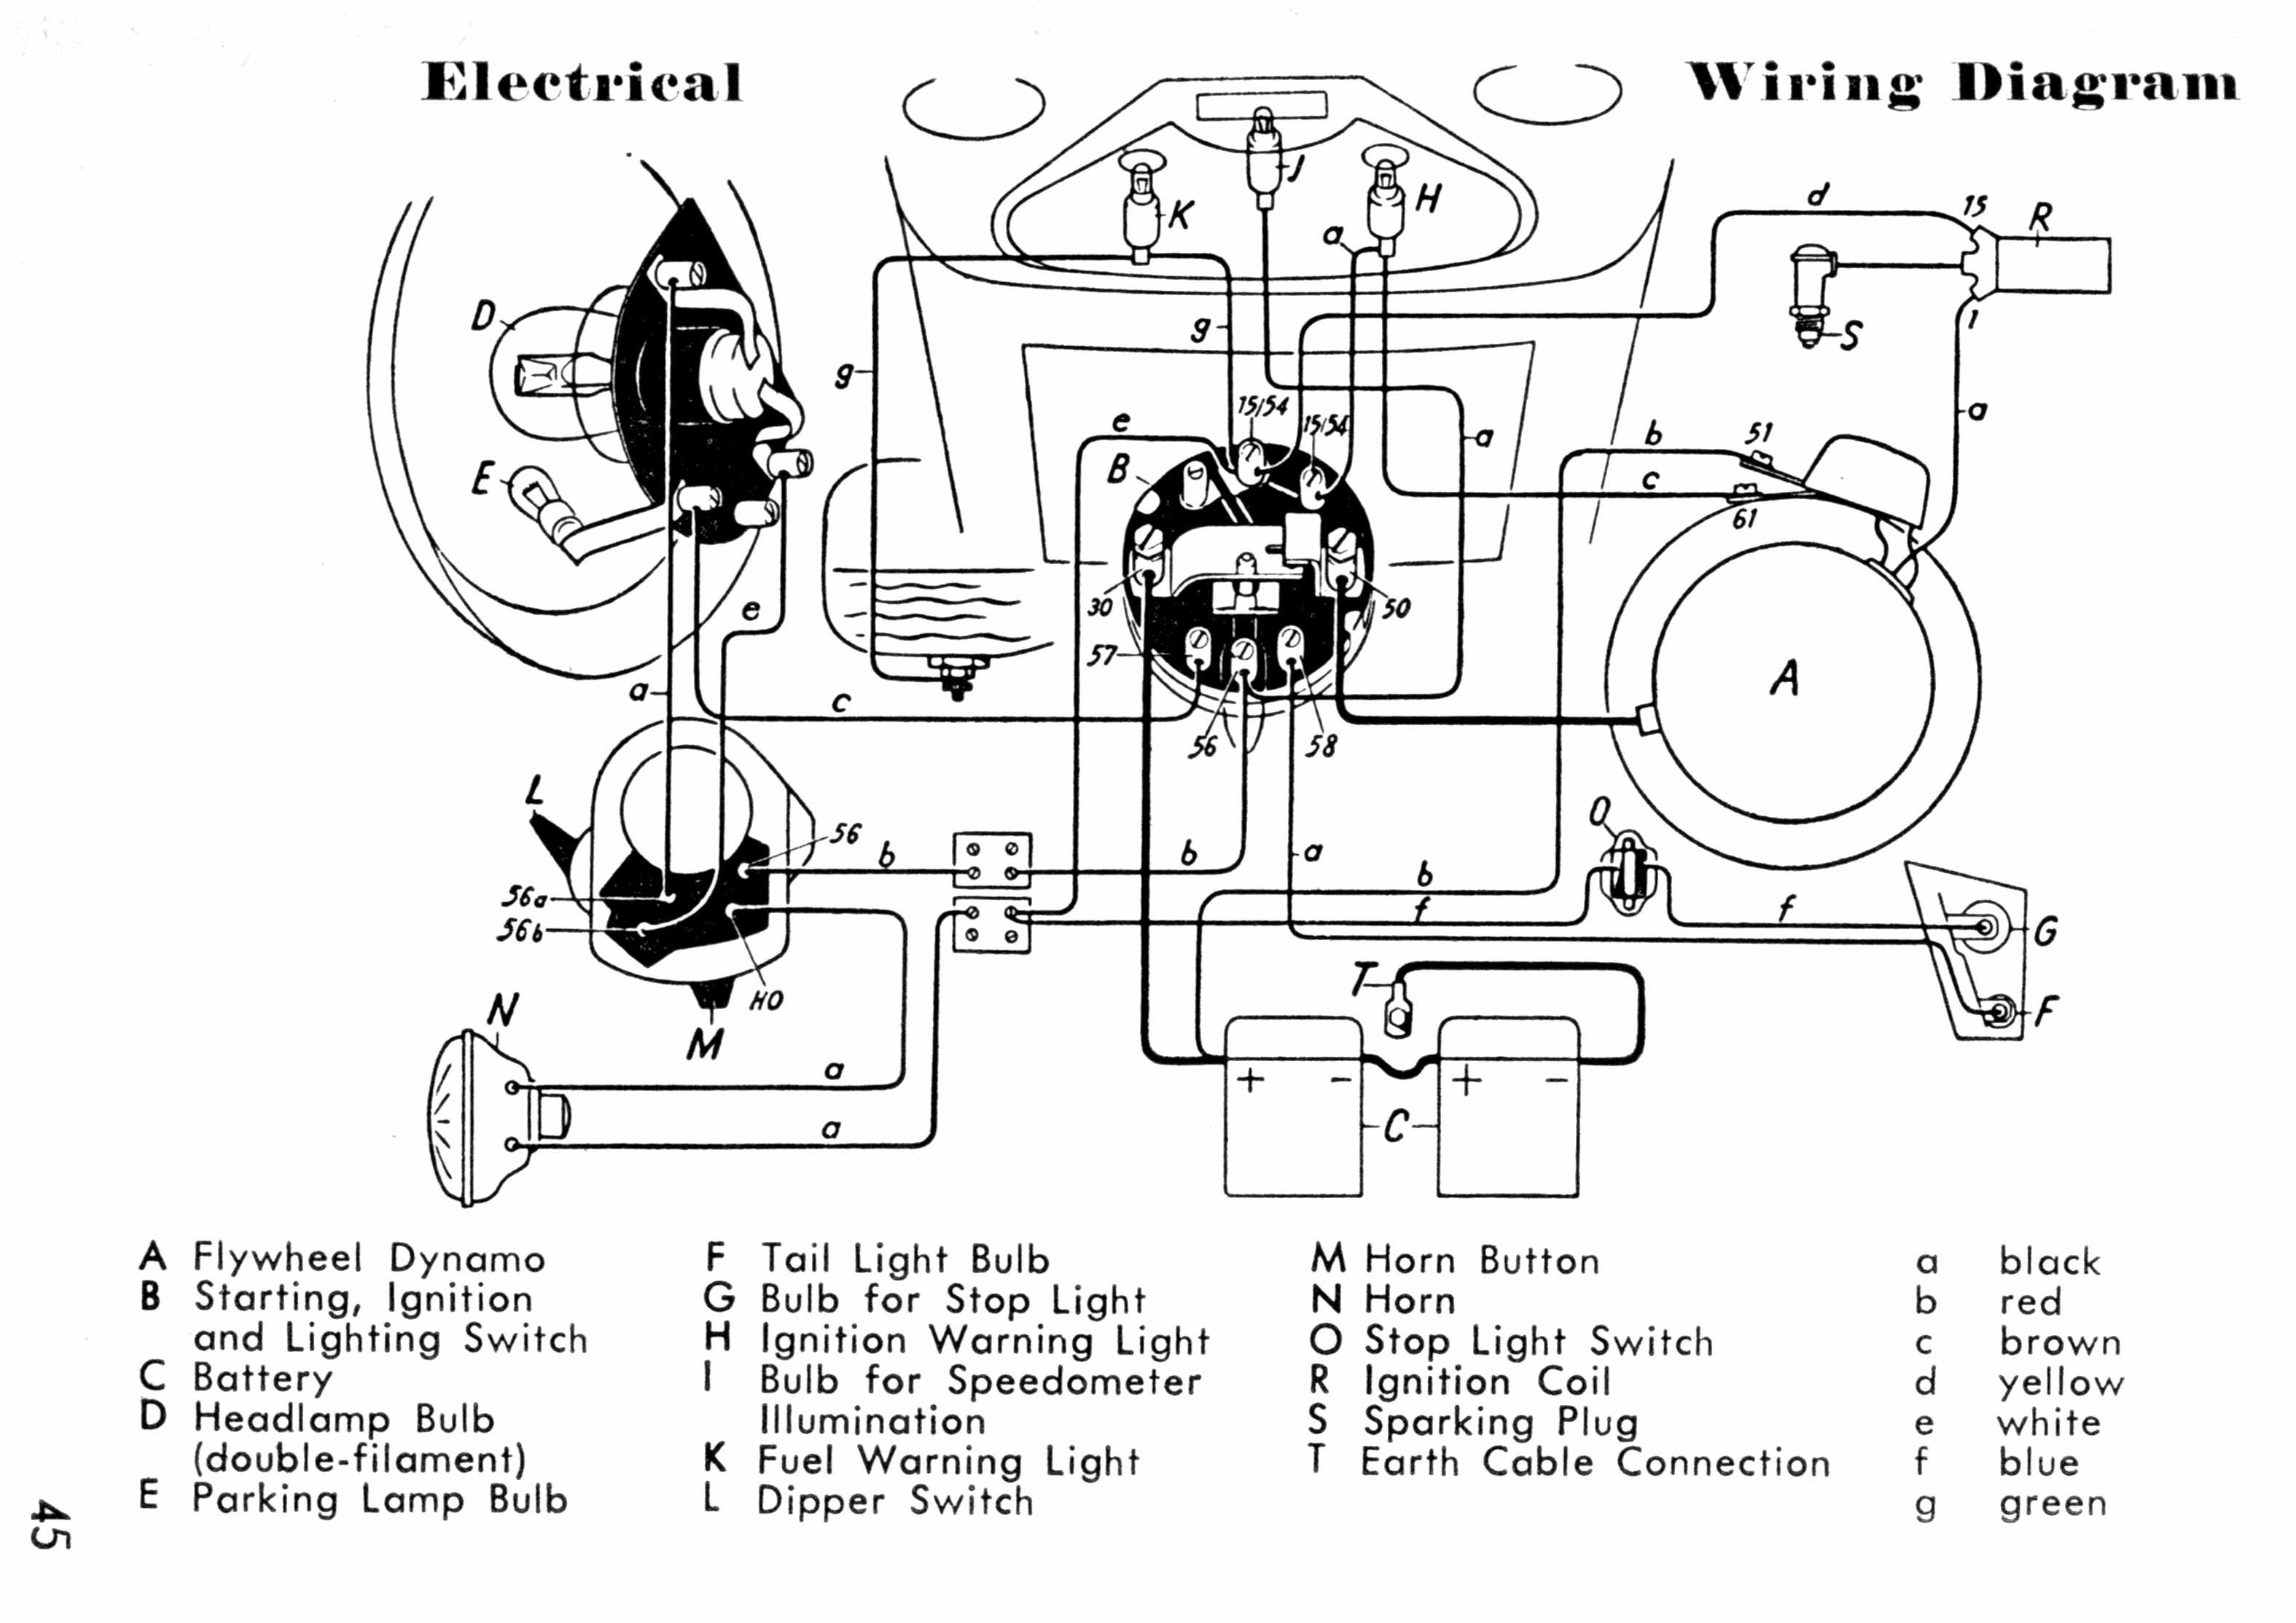 Wiring diagram free vespa wire center schematic electric scooter wiring diagram closet pinterest rh pinterest com light switch wiring diagram vespa gt200 cheapraybanclubmaster Choice Image